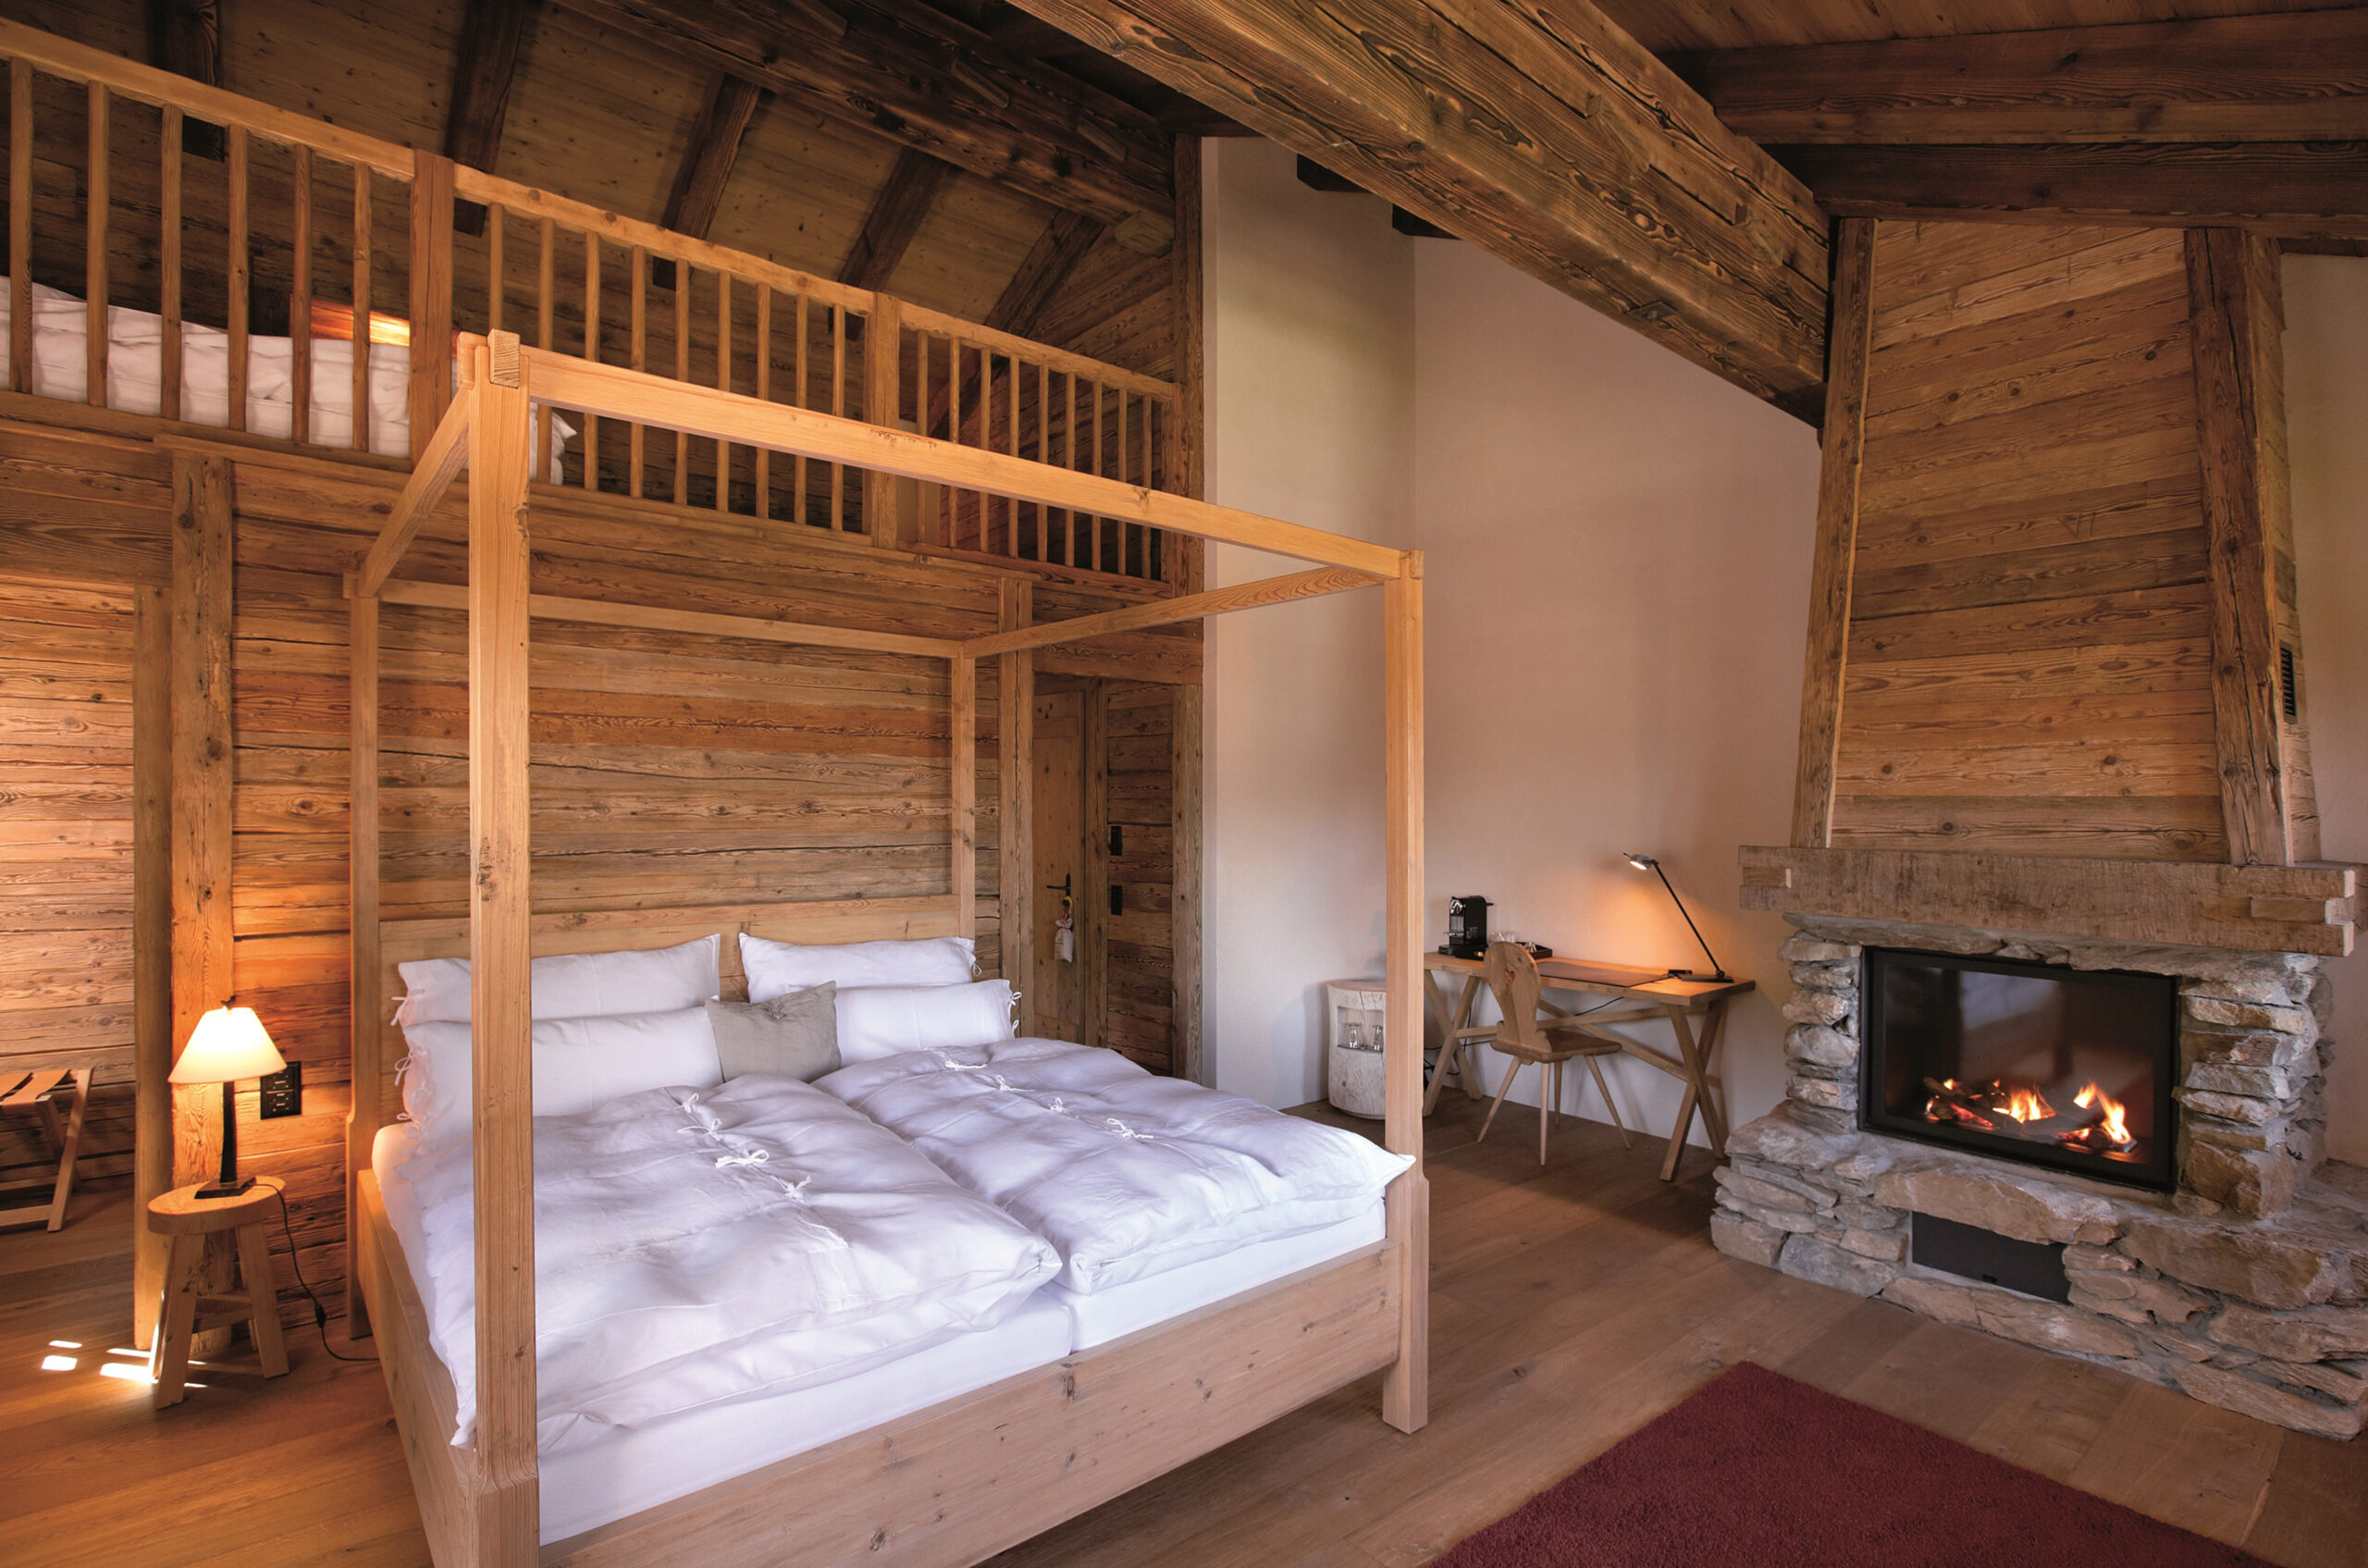 Rustic four-poster bed